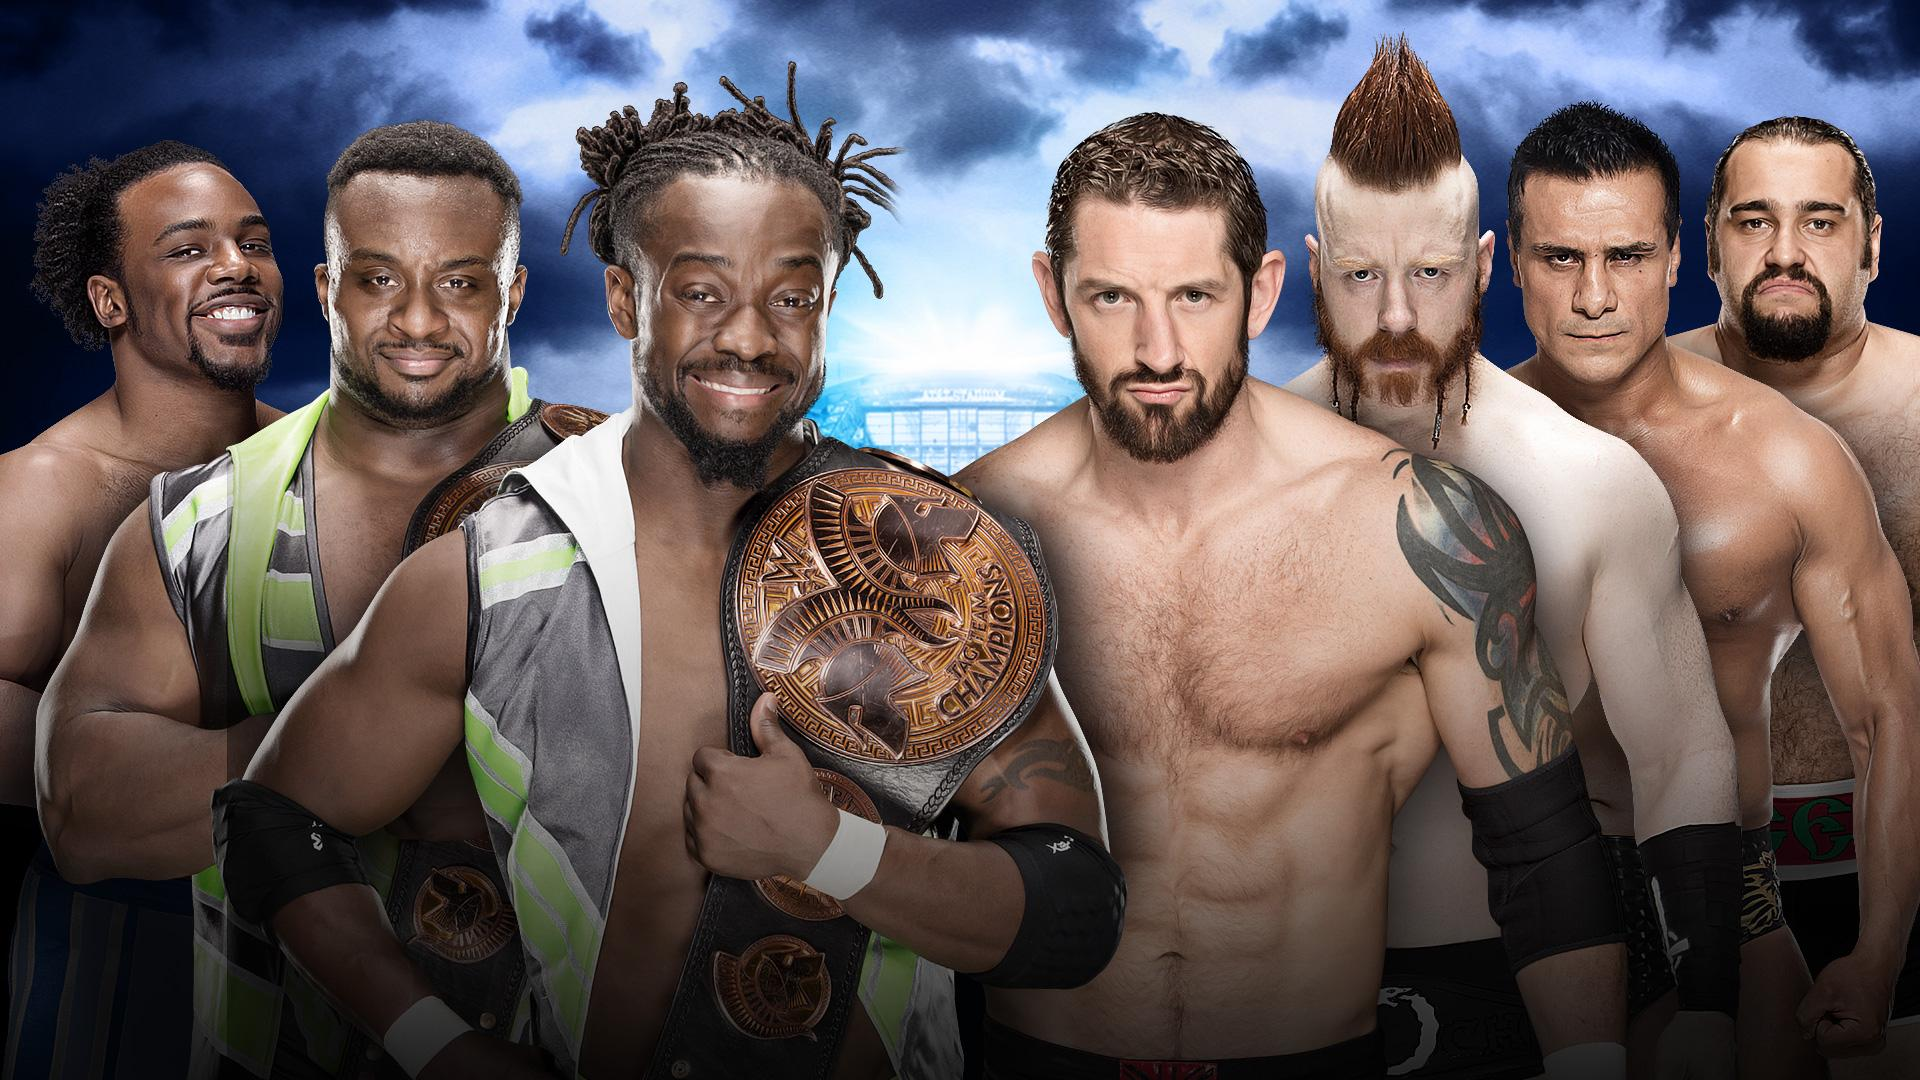 The New Day vs The League of Nations